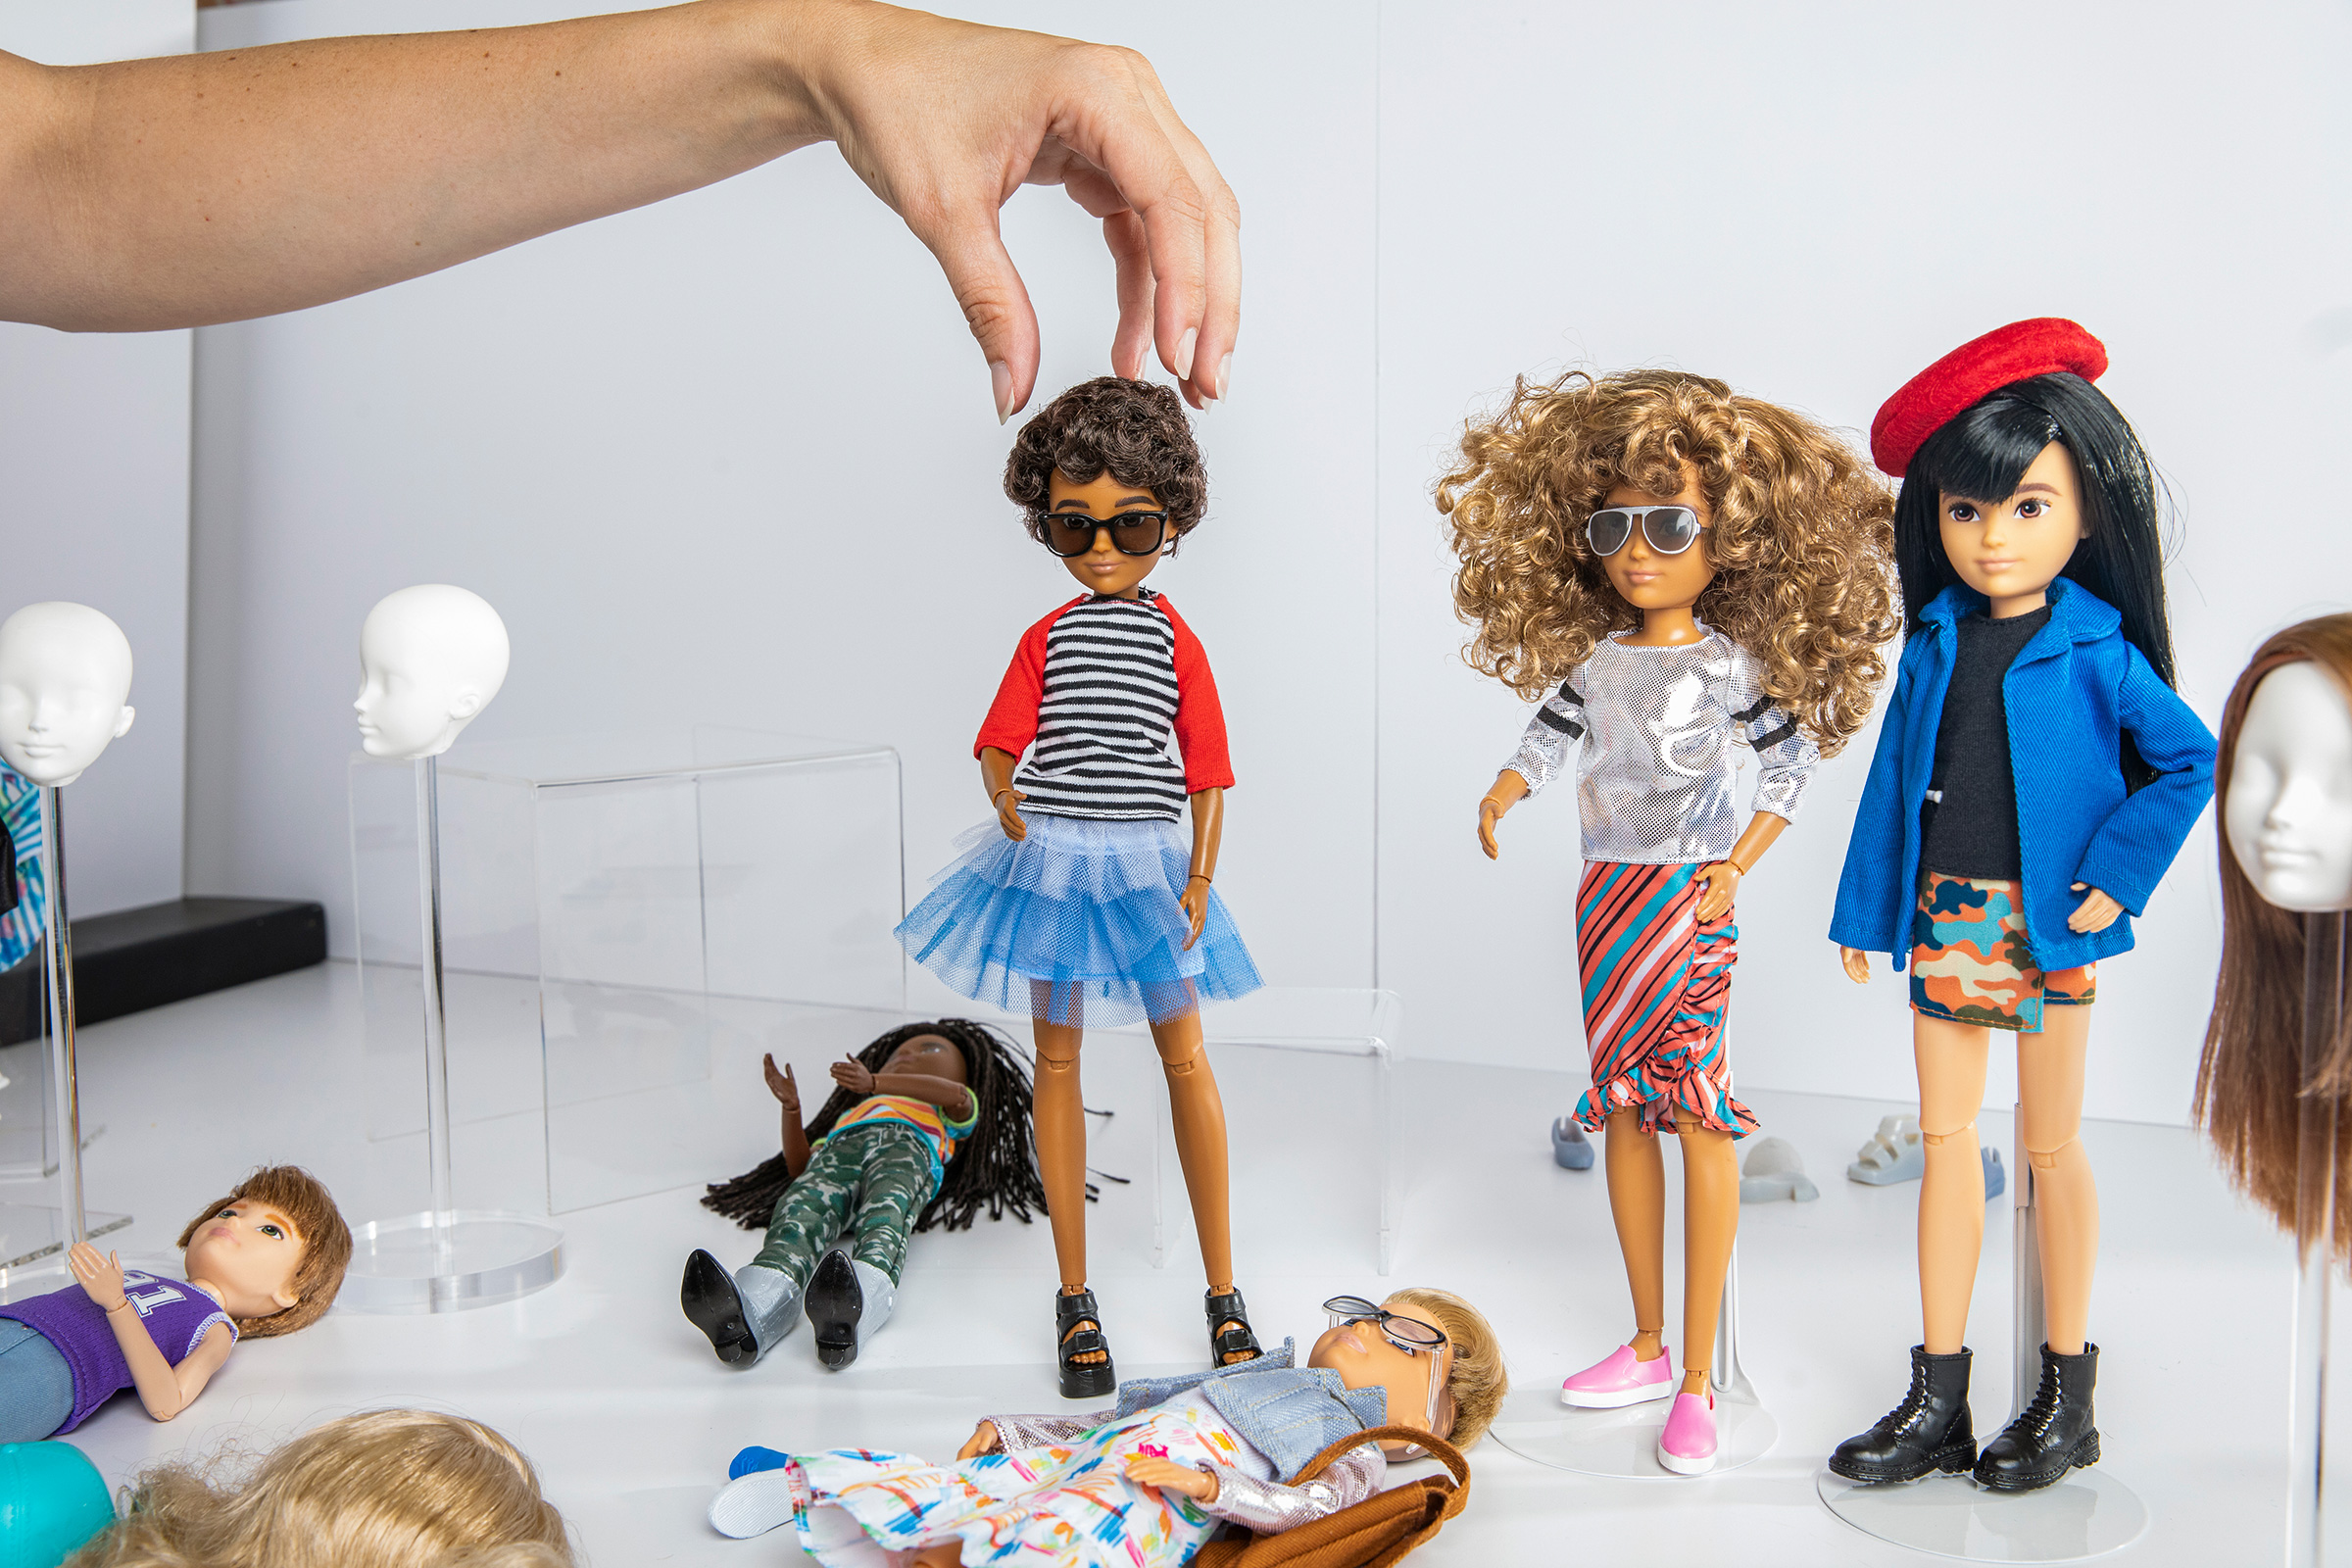 Mattel's Creatable World doll at Mattel's headquarters on September 5, 2019.